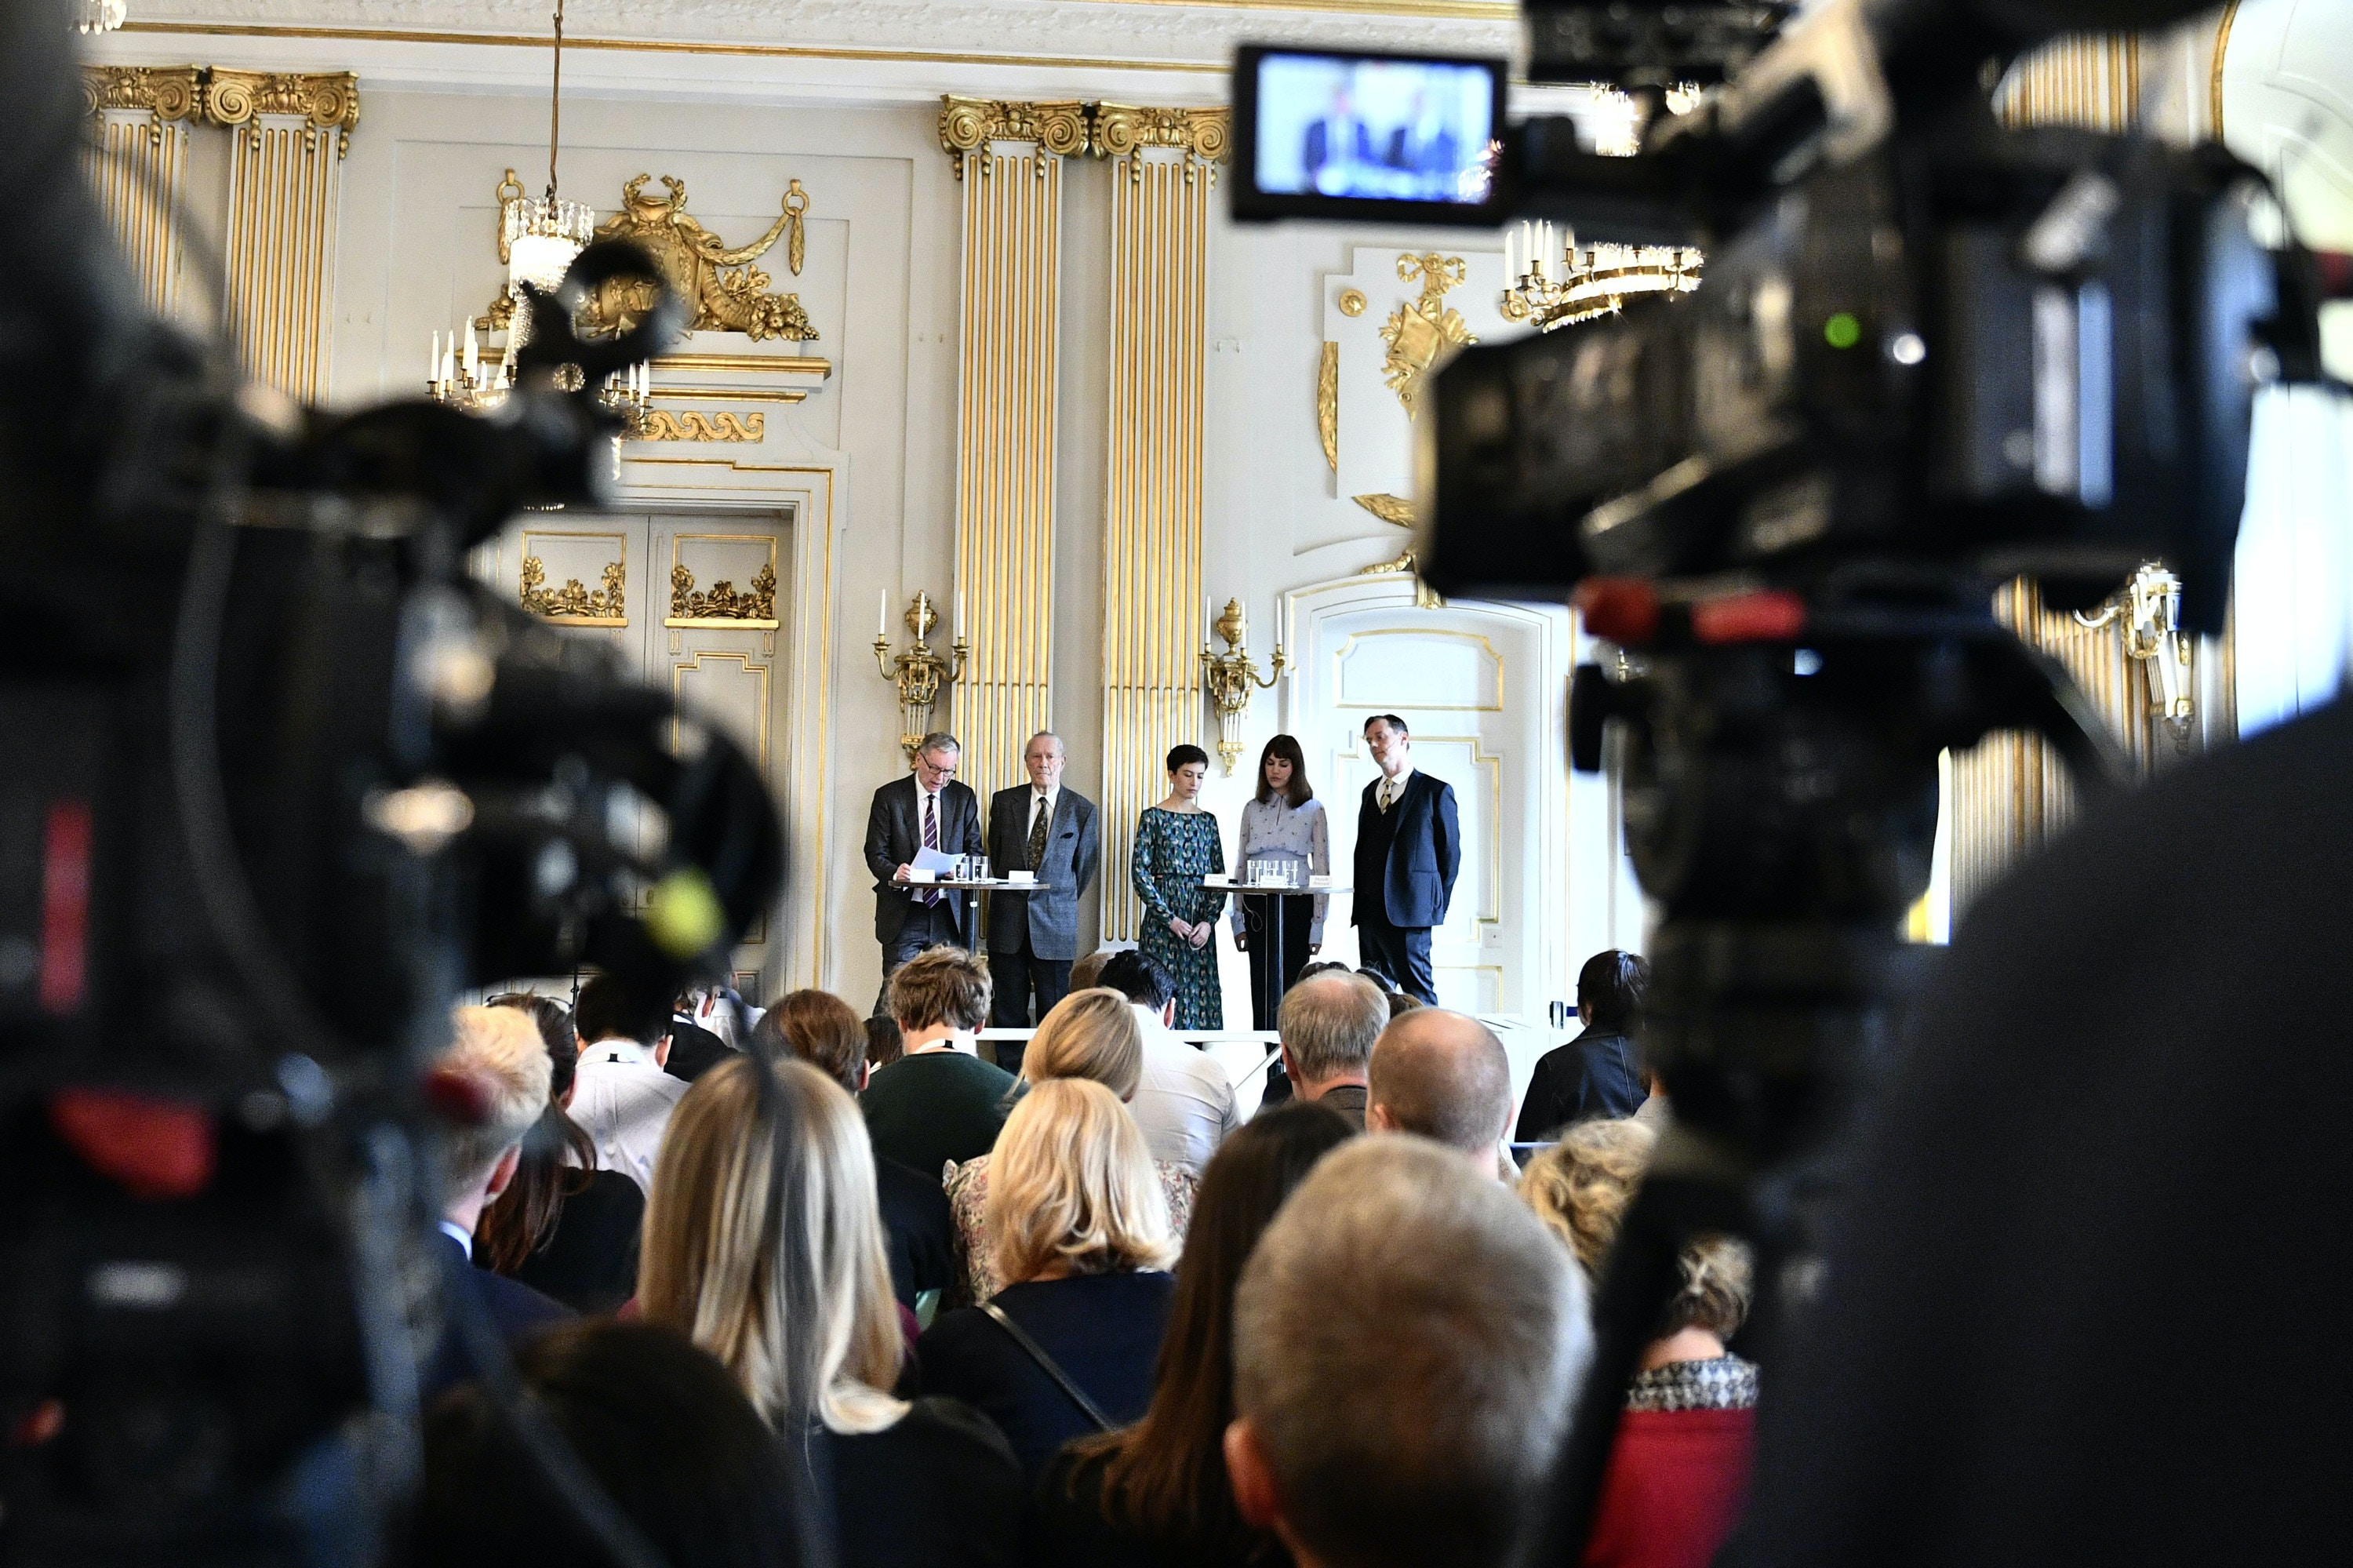 Members of the Nobel Committee for Literature (L-R) Chairman Anders Olsson, Per Wastberg, Rebecka Karde, Mikaela Blomqvist and Henrik Petersen announce the winners of the 2018 and 2019 Nobel Prize in Literature at the Swedish Academy in Stockholm, Sweden on October 10, 2019. - Polish writer Olga Tokarczuk on Thursday won the 2018 Nobel Literature Prize, while Austrian novelist playwright Peter Handke won the 2019 prize, the Swedish Academy said. (Photo by Karin WESSLEN / TT News Agency / AFP) (Photo by KARIN WESSLEN/TT News Agency/AFP via Getty Images)